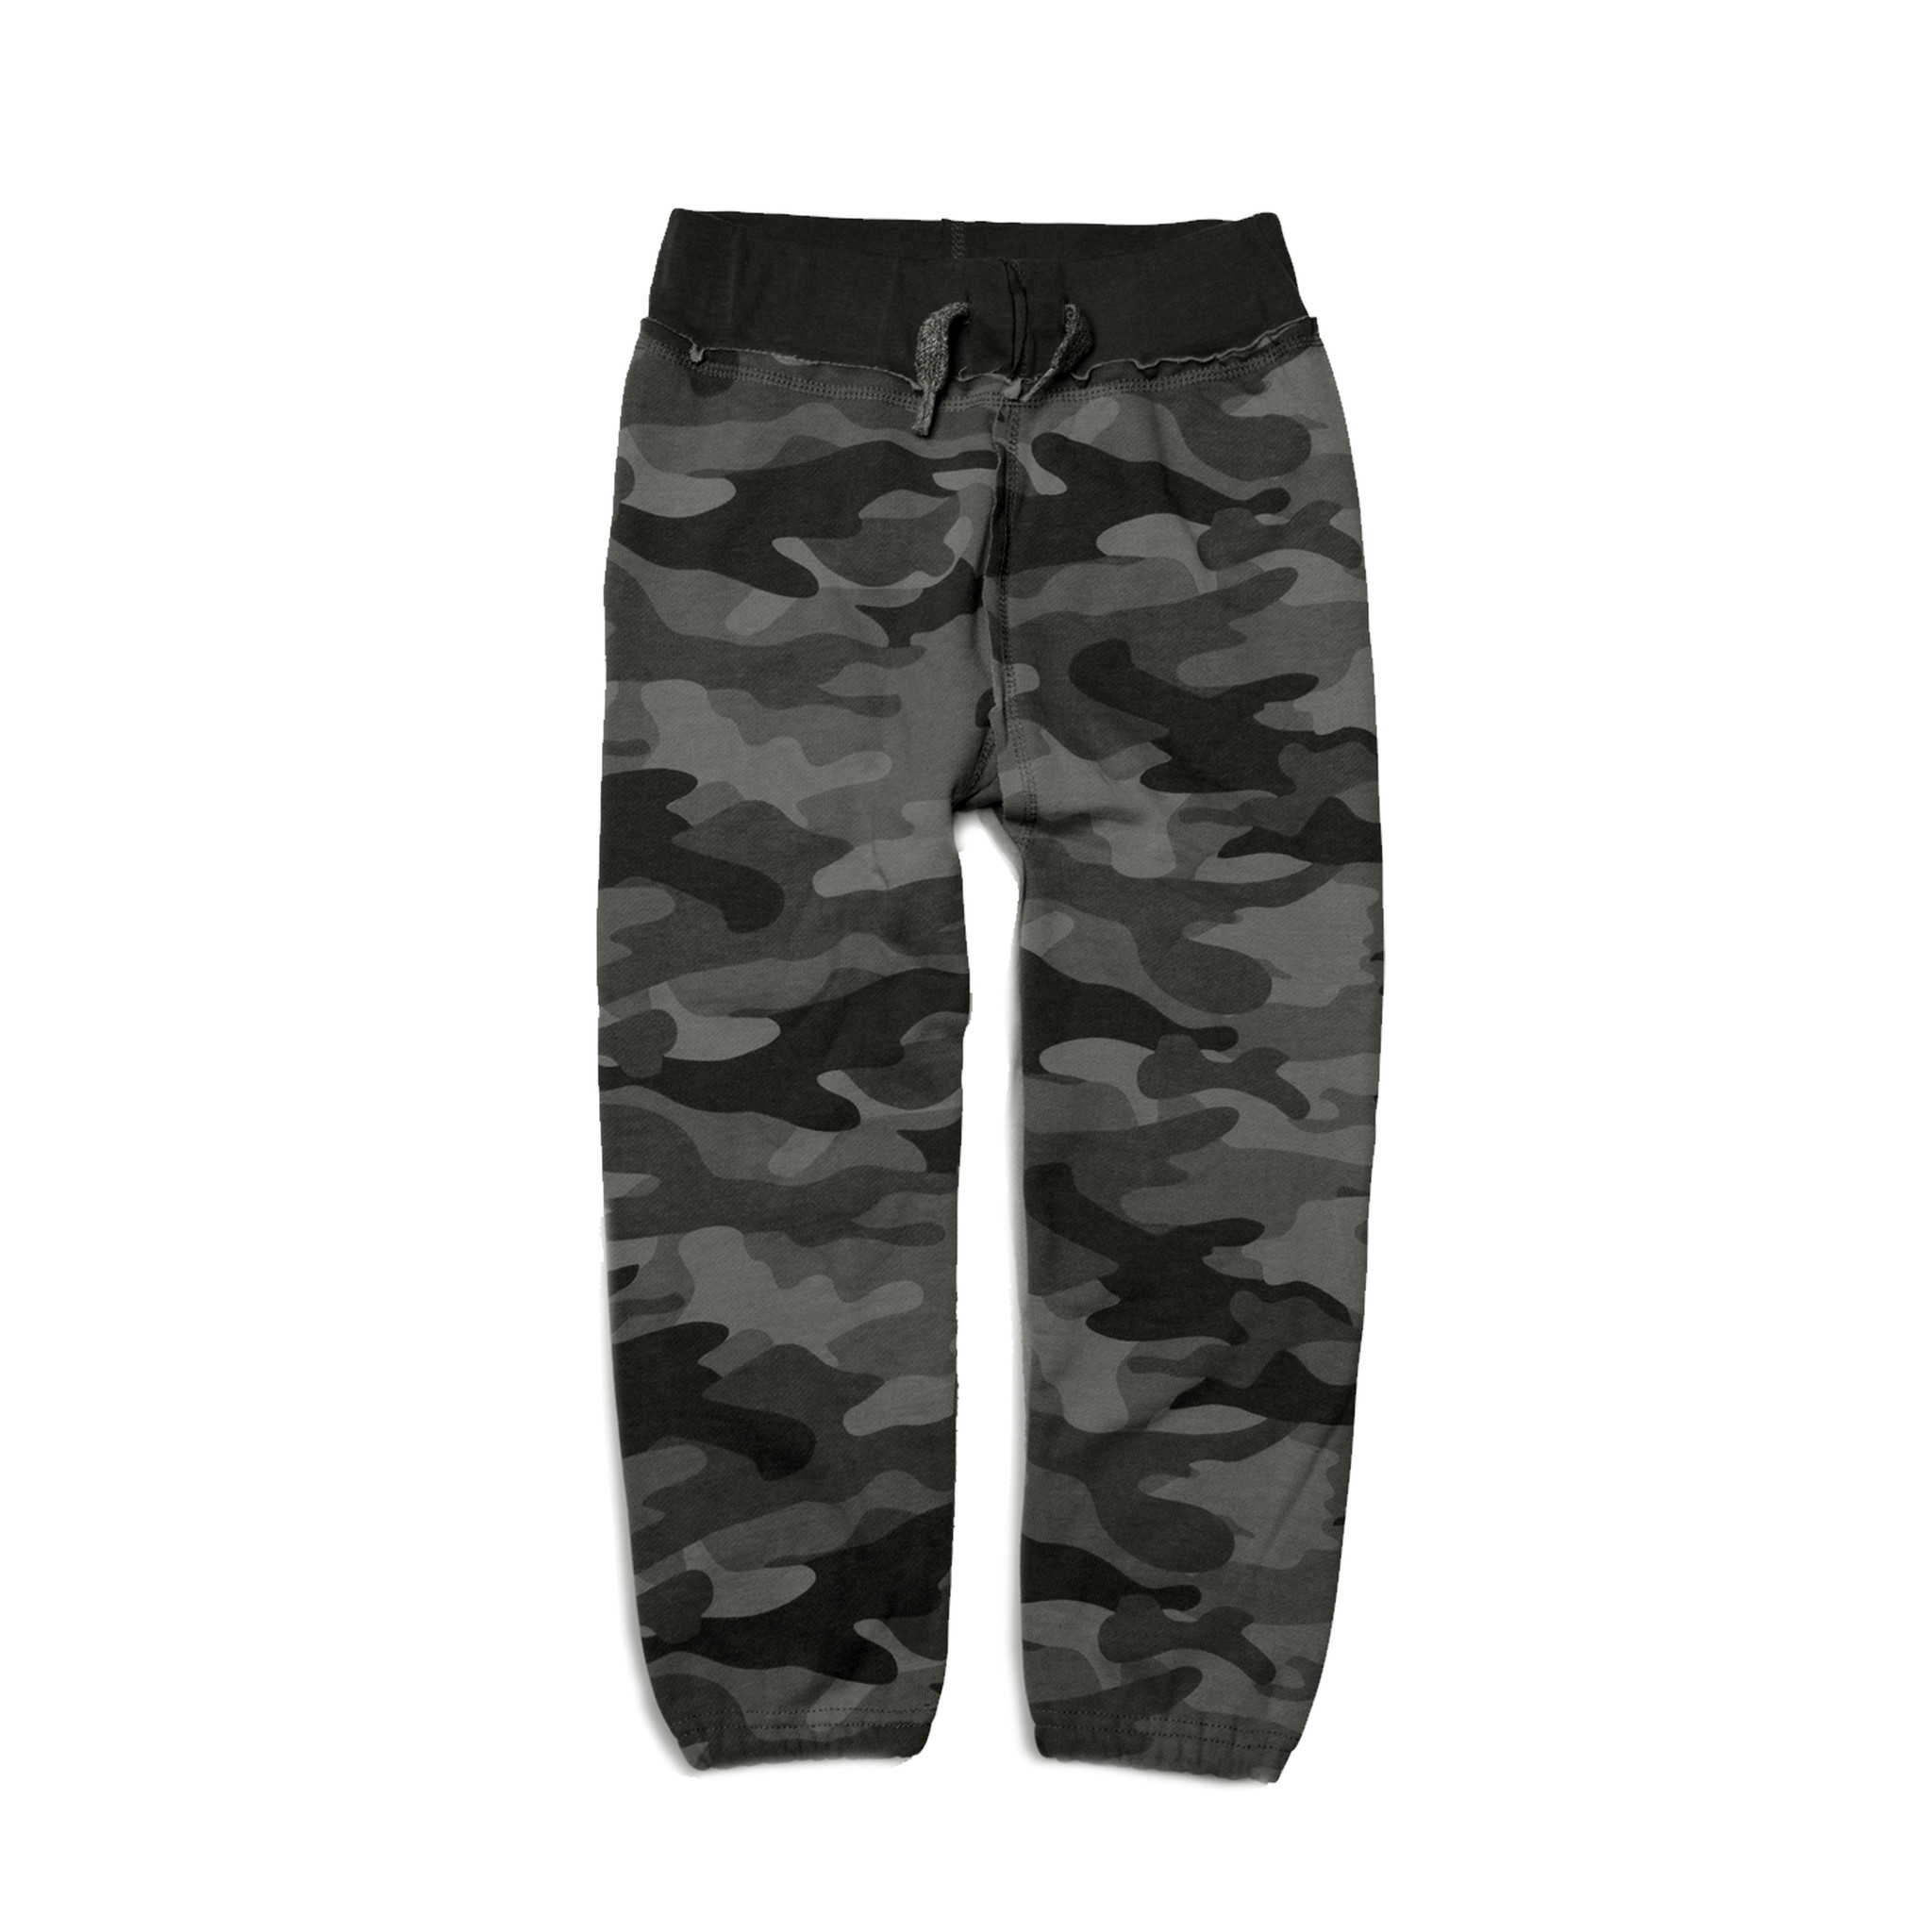 Appaman Camo Print Infant Gym Sweats